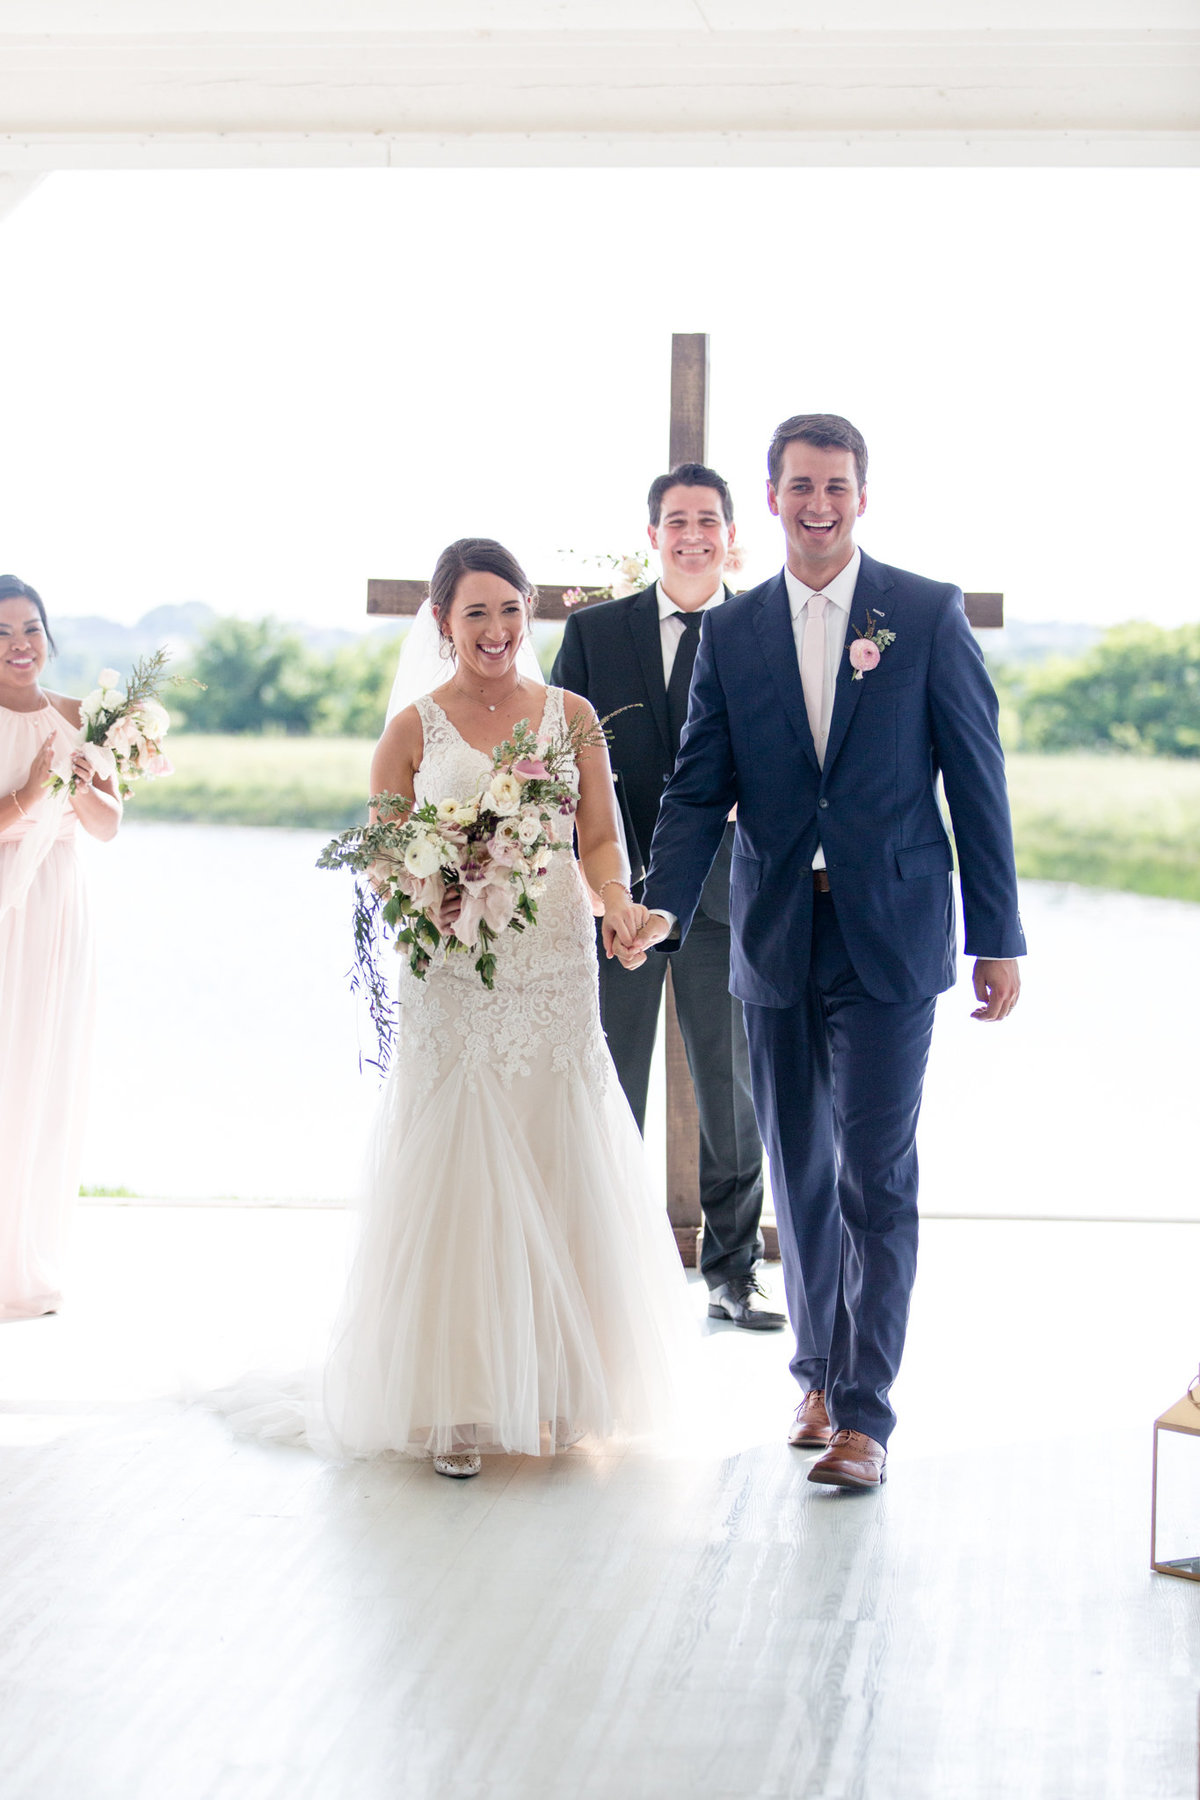 Grand Ivory Wedding| Dallas, Texas | DFW Wedding Photographer | Sami Kathryn Photography-85